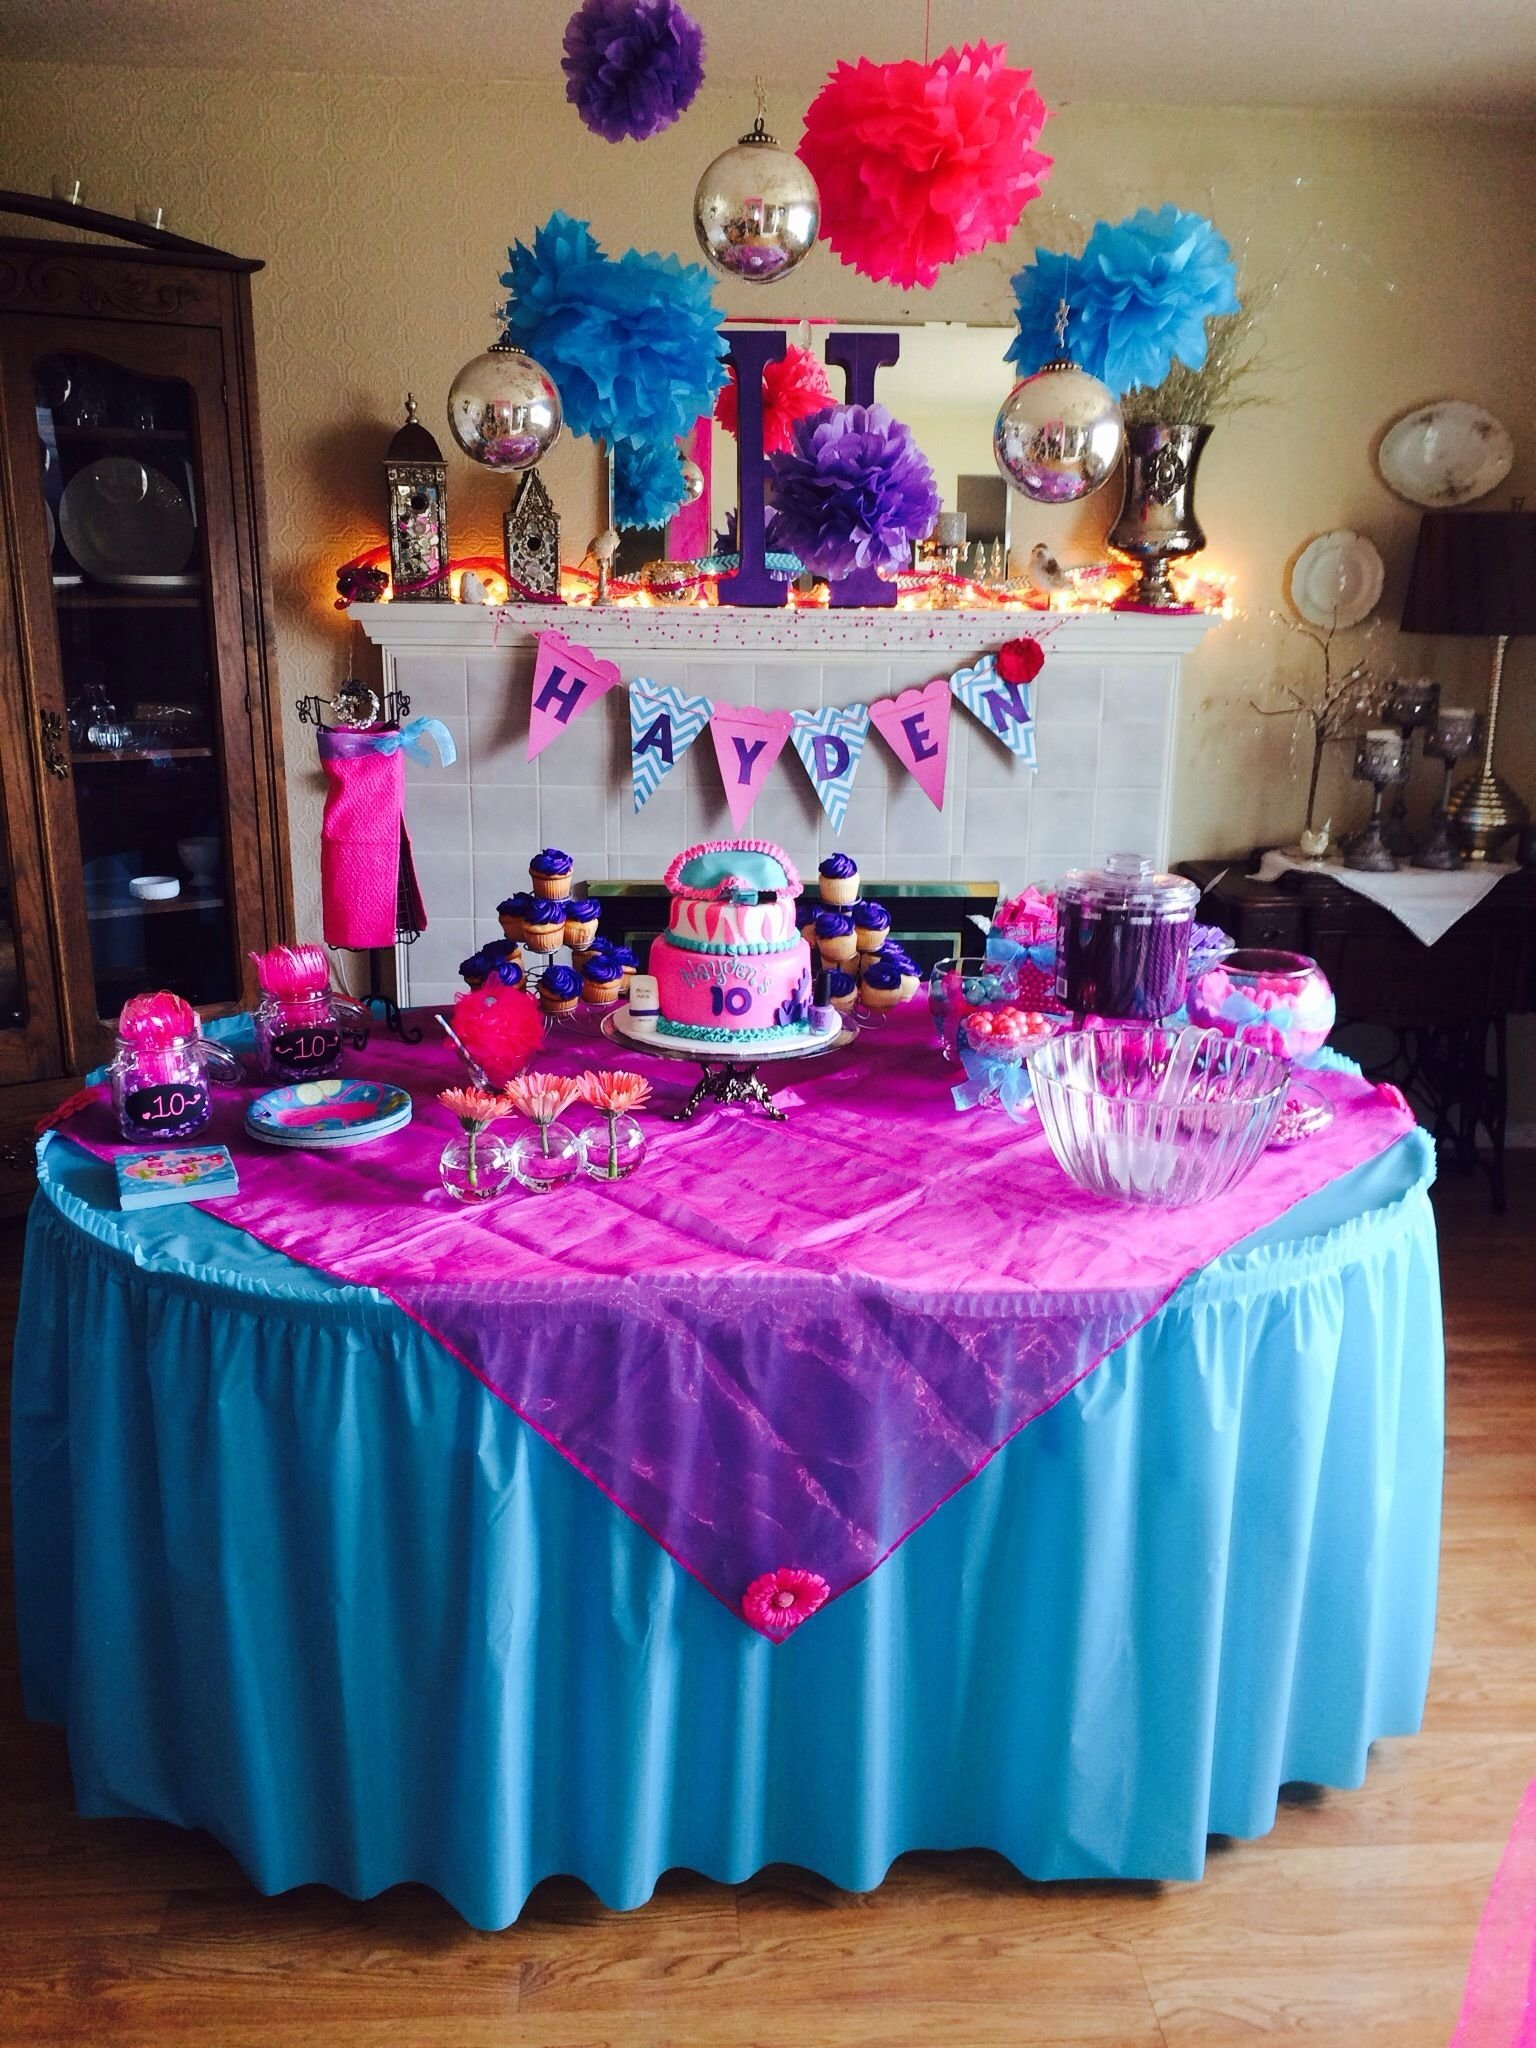 10 Most Recommended 10 Year Birthday Party Ideas